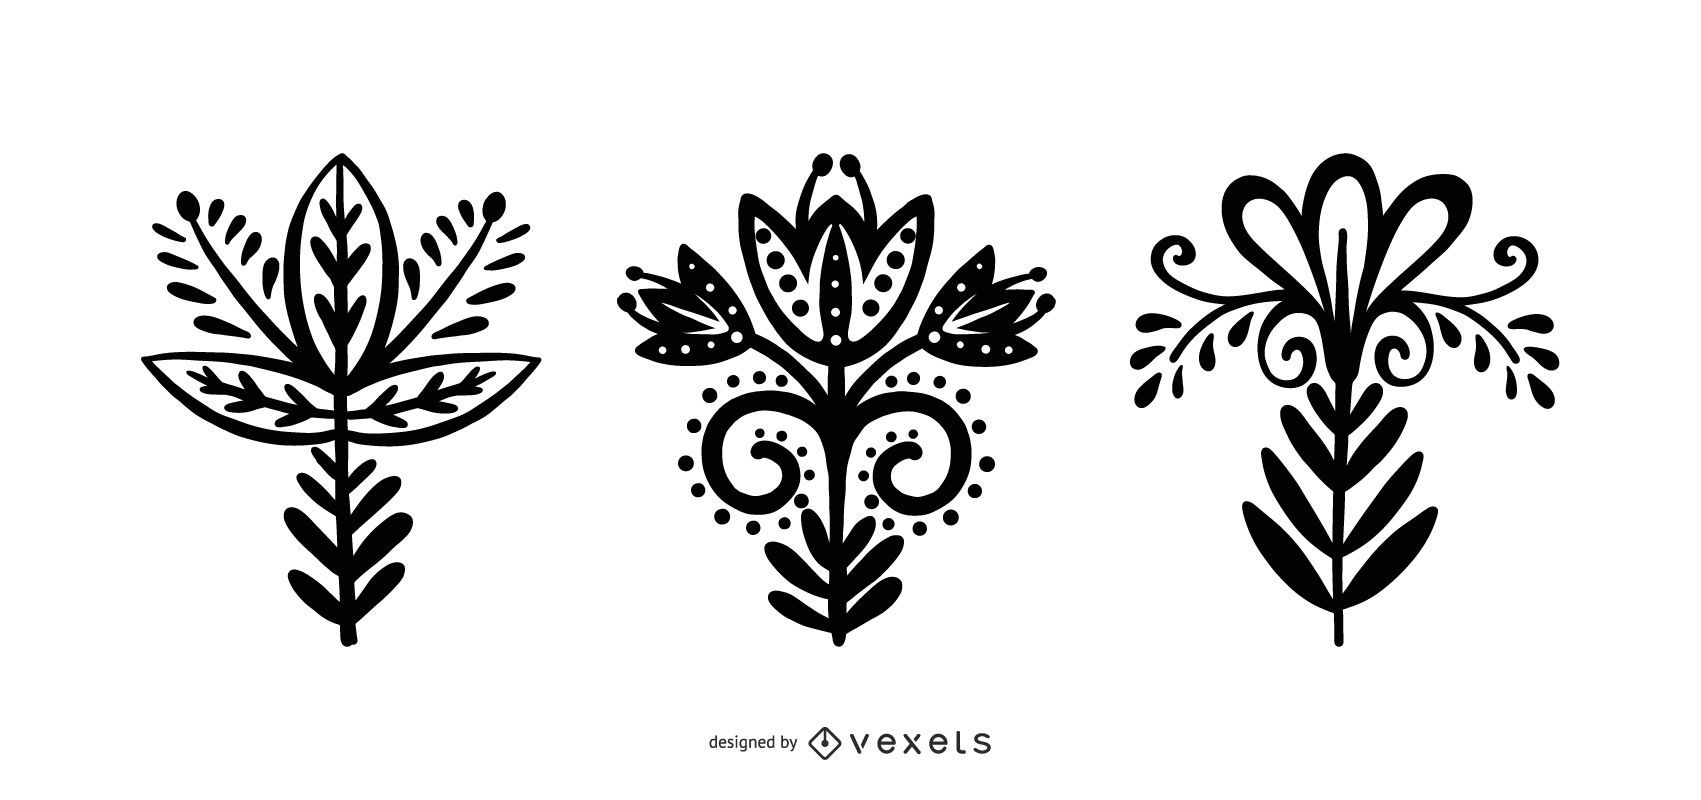 Scandinavian Style Flower Silhouette Collection